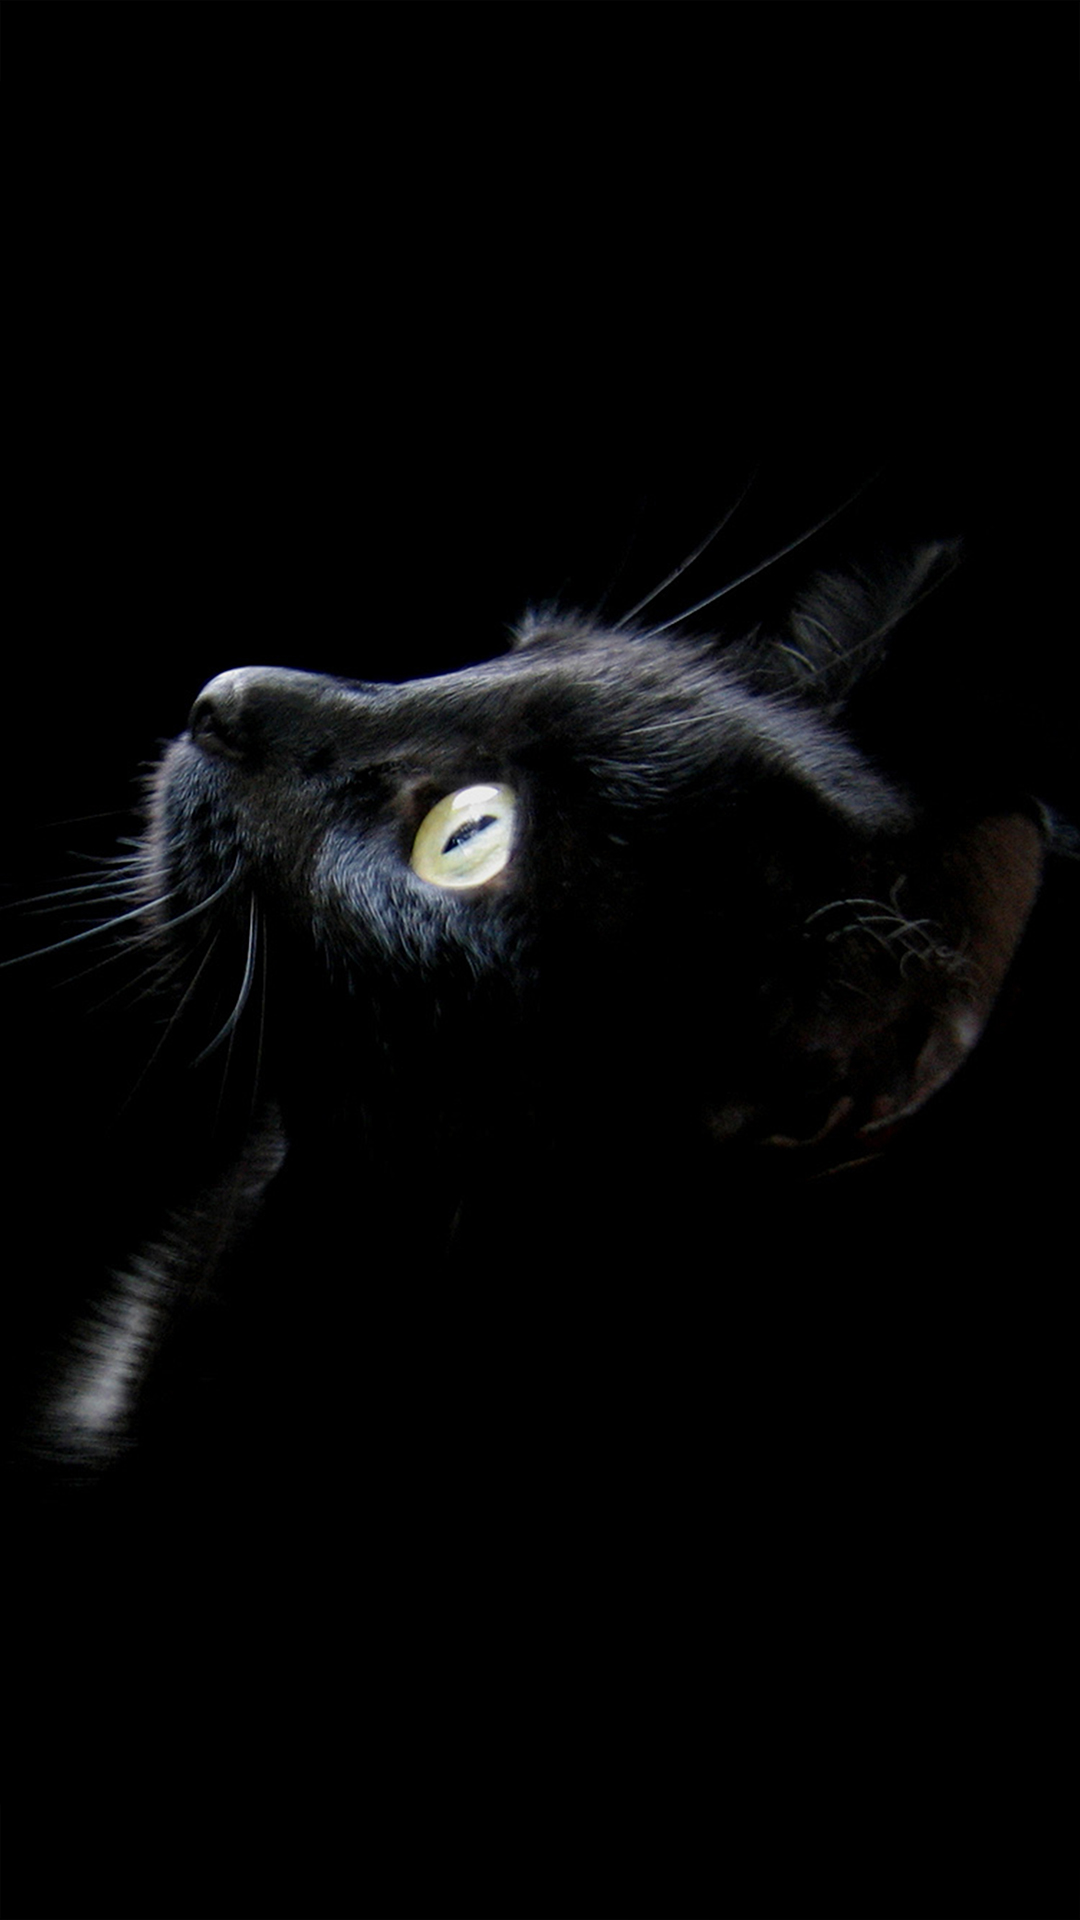 Good Cat Wallpaper For Your Phone - black-cat-4489  Pictures_211100 .jpg